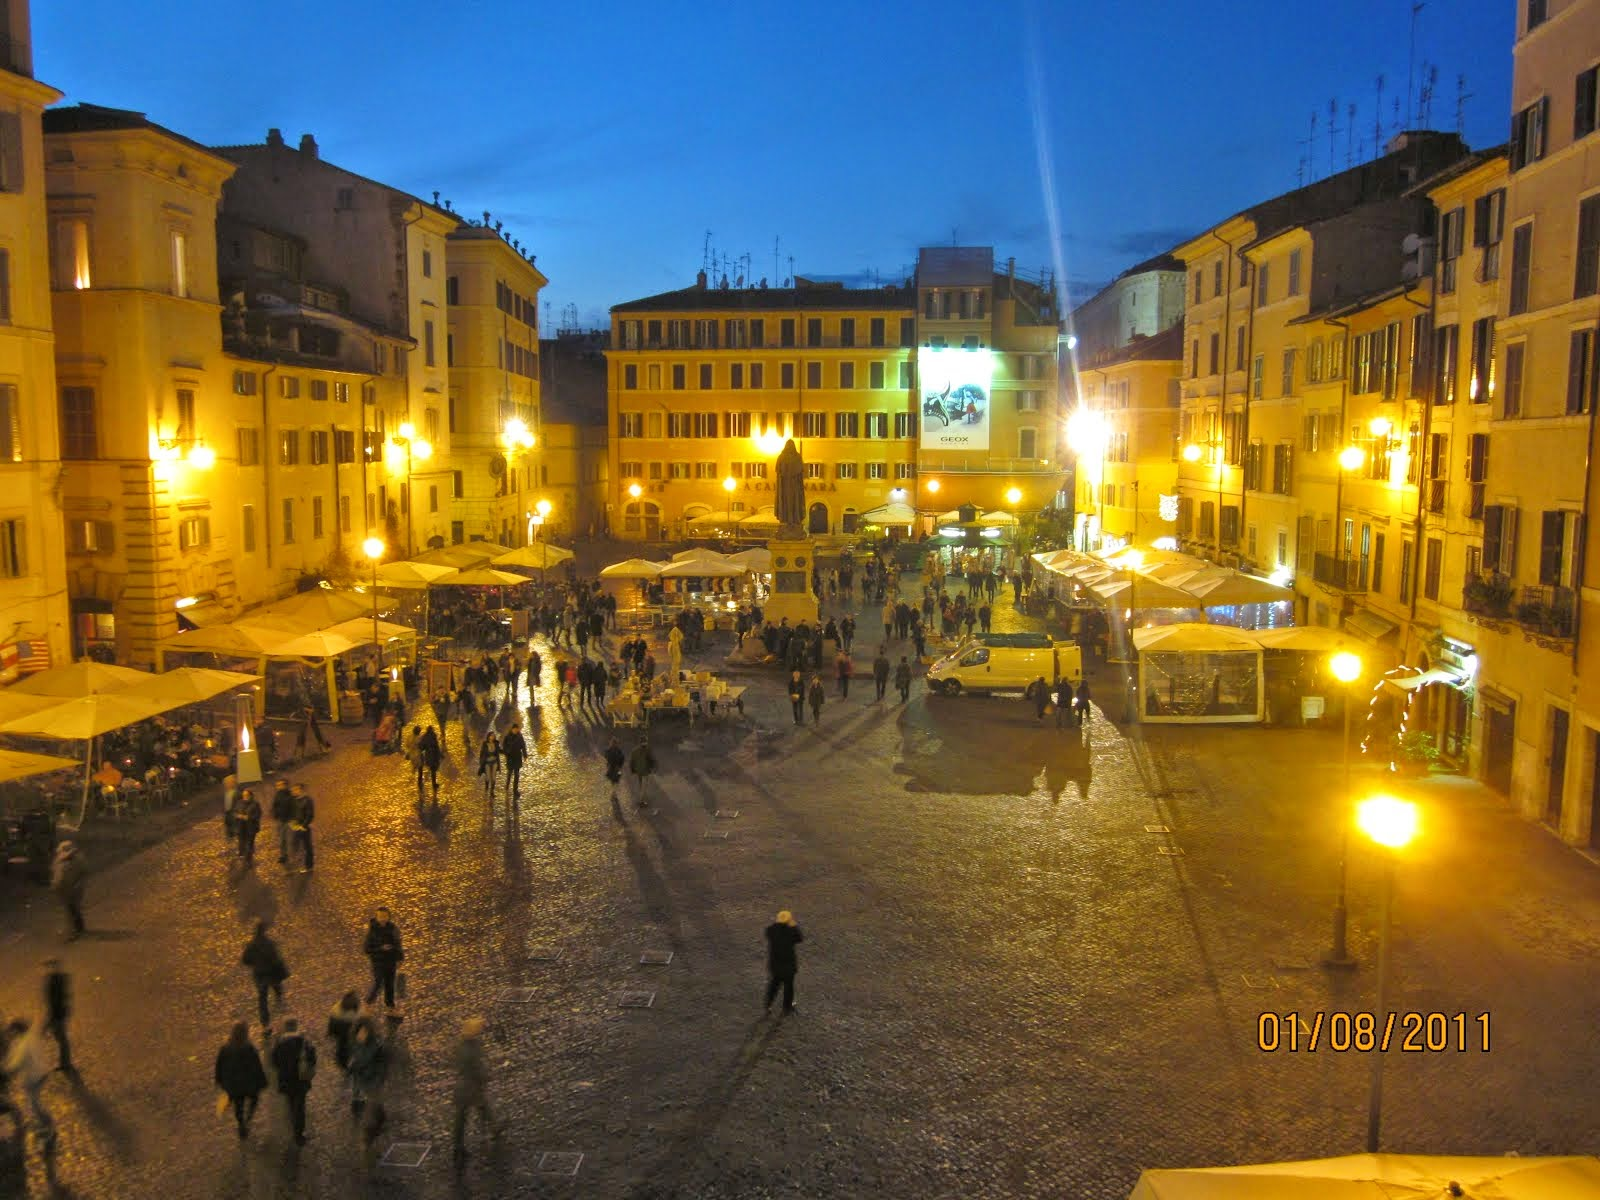 CAMPO DEI FIORI: UW ROME CENTER VIEW